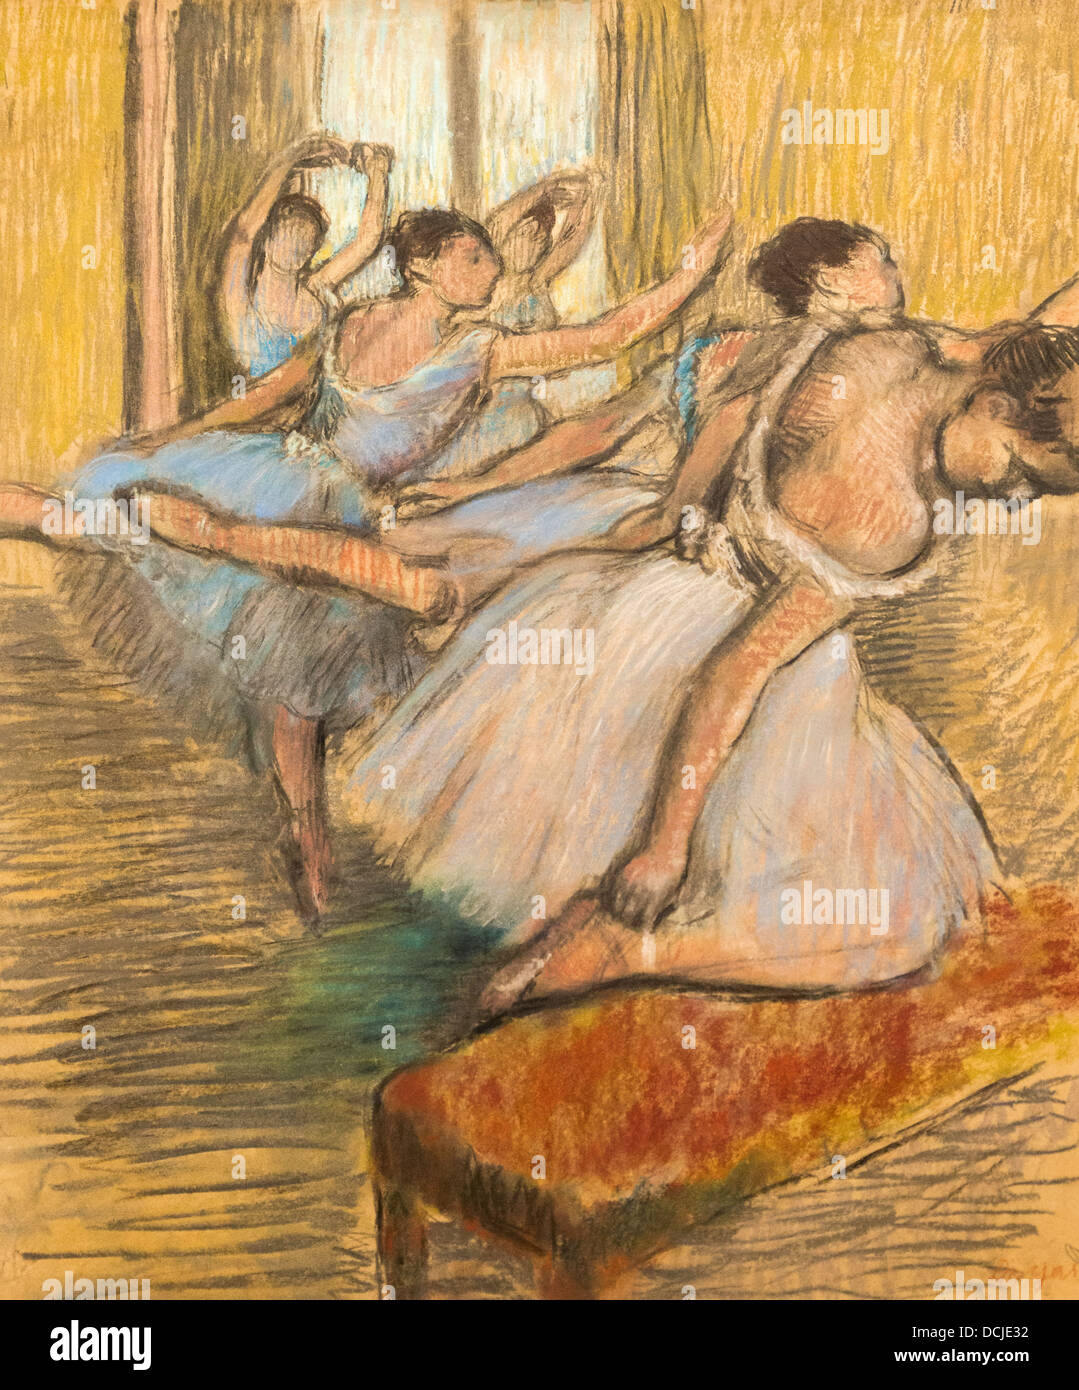 20th century  -  The Dancers, 1900 - Edgar Degas Philippe Sauvan-Magnet / Active Museum - Stock Image